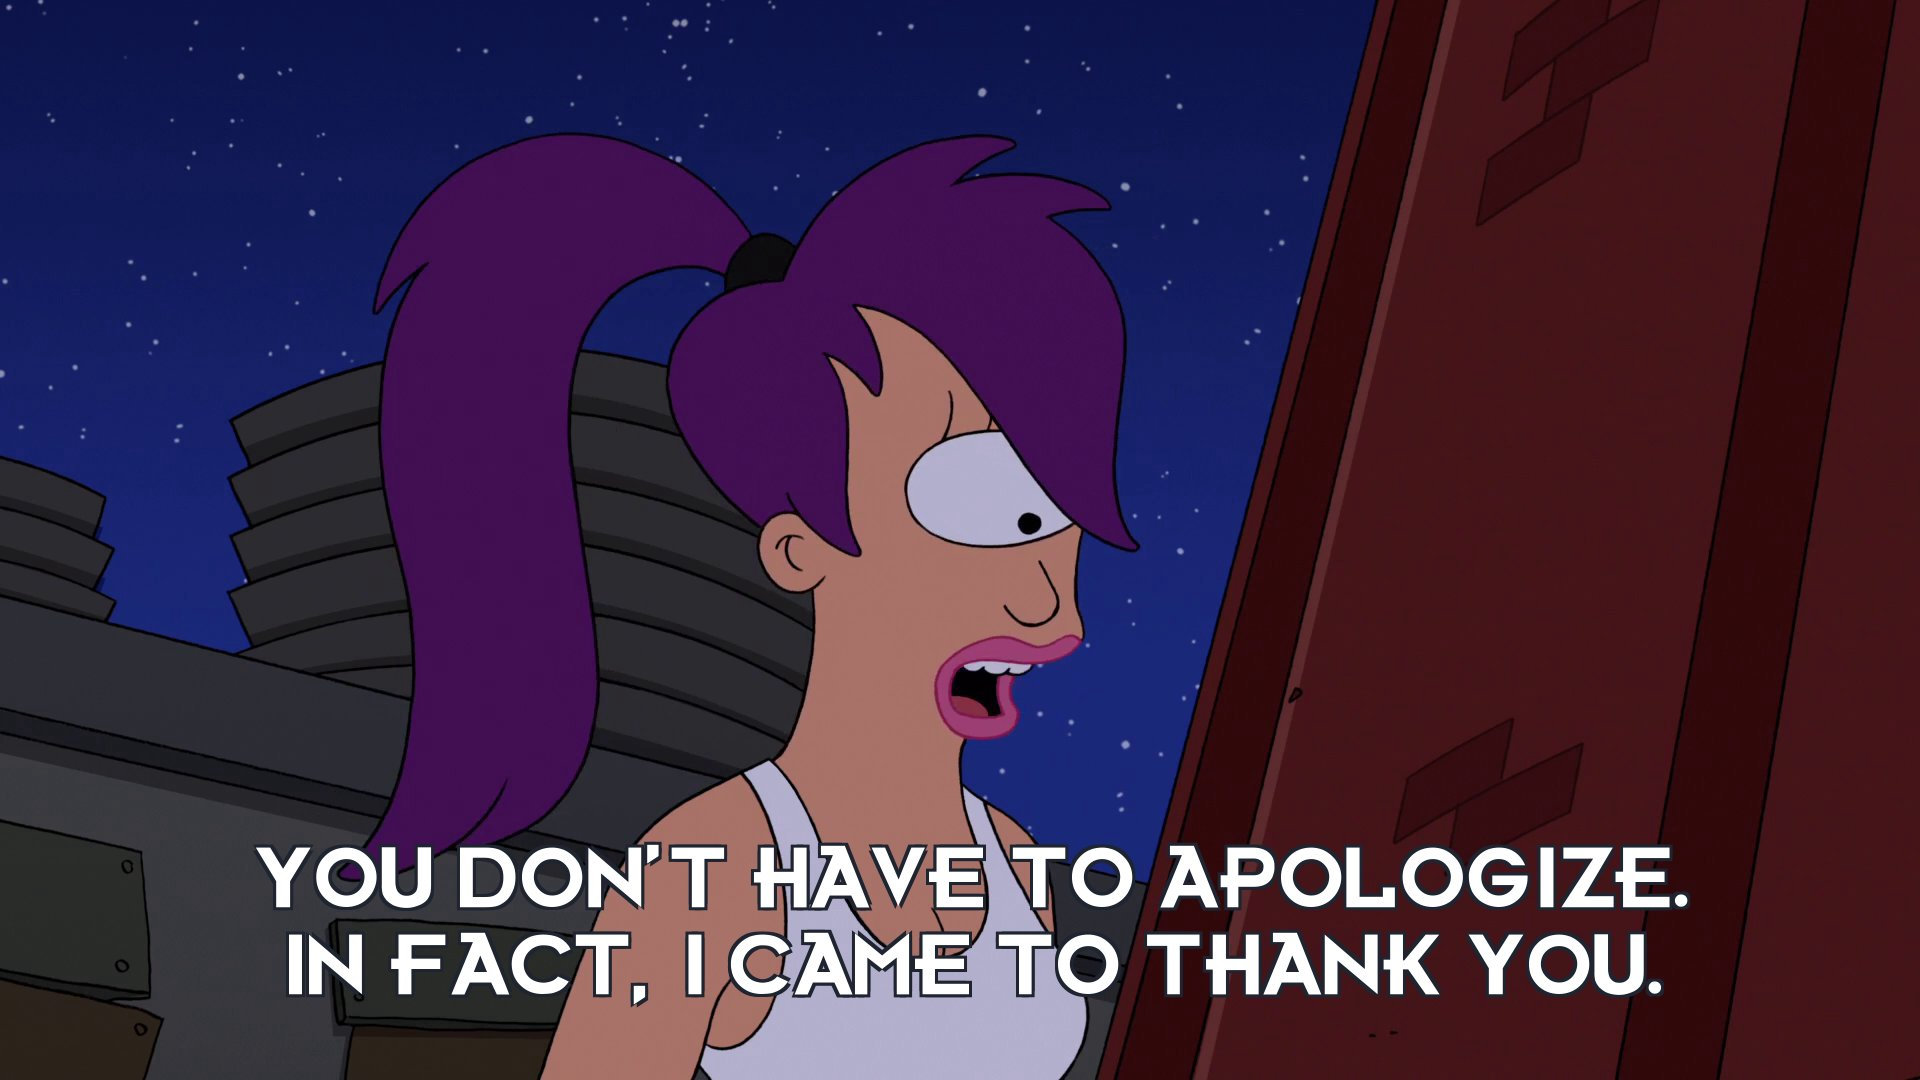 Turanga Leela: You don't have to apologize. In fact, I came to thank you.